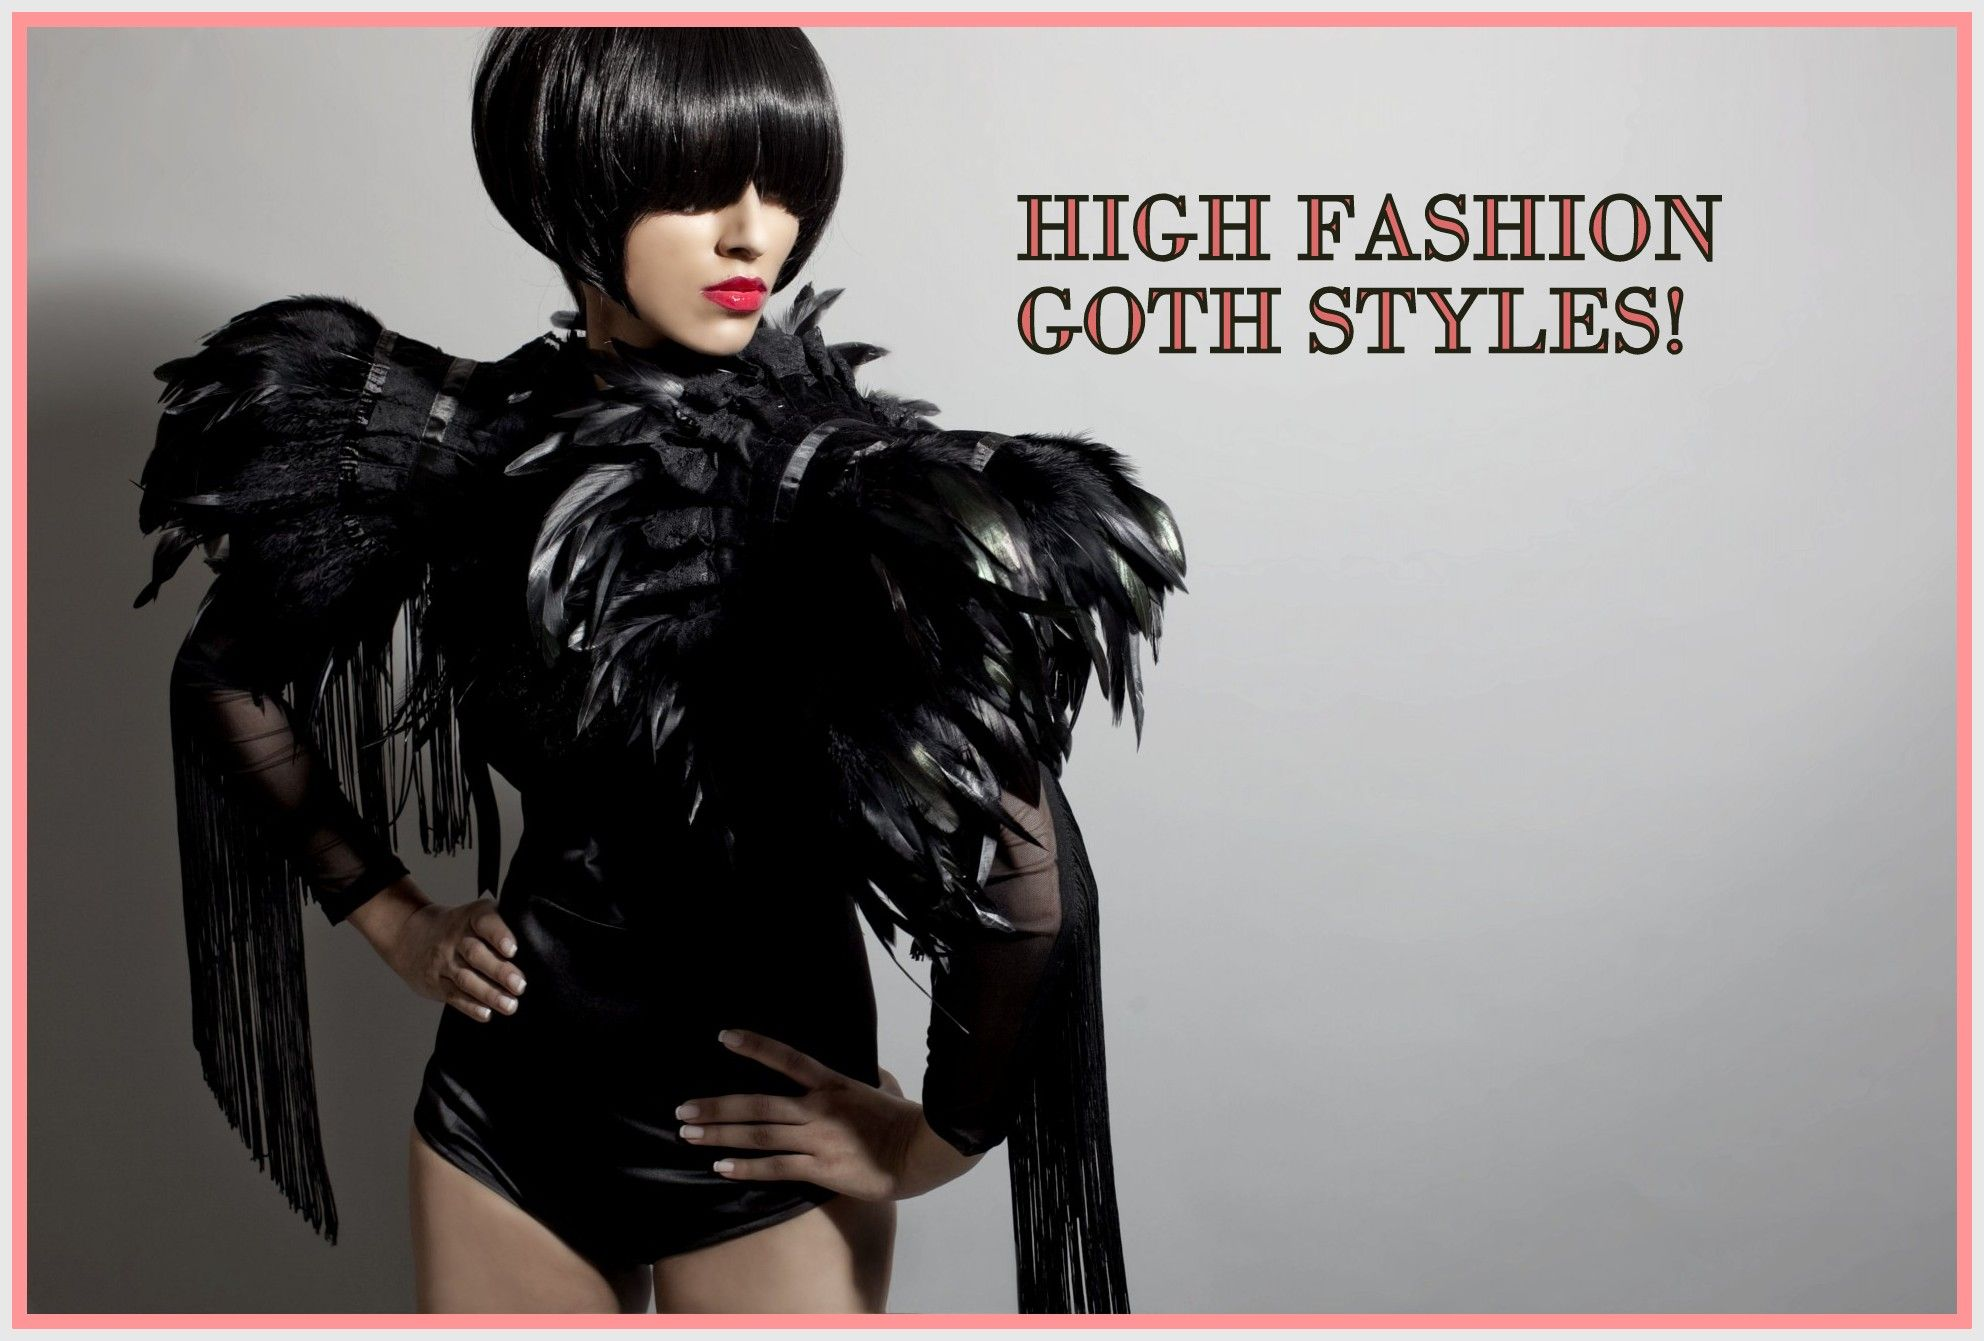 Goth Inspired High Fashion Styles